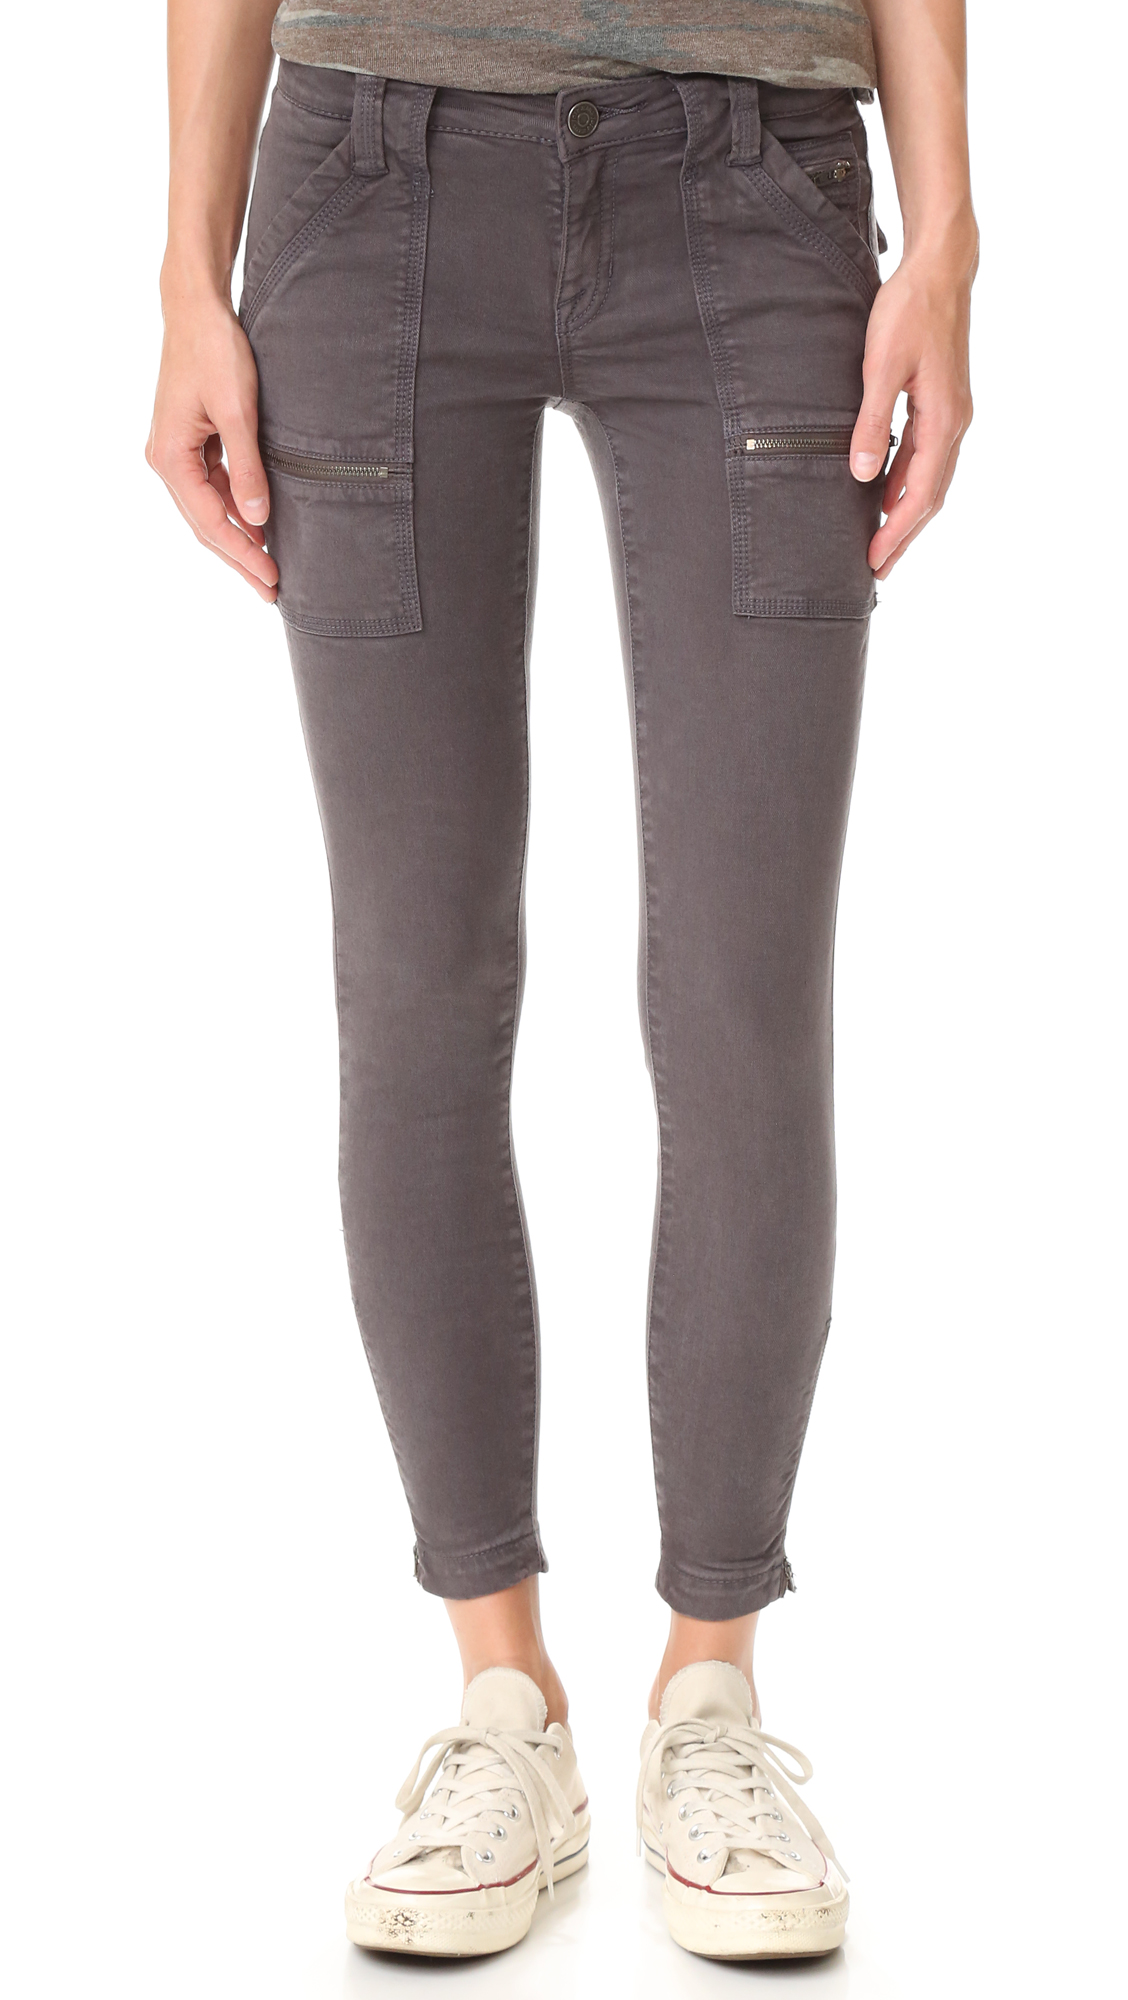 Joie Park Skinny Pants - Storm at Shopbop